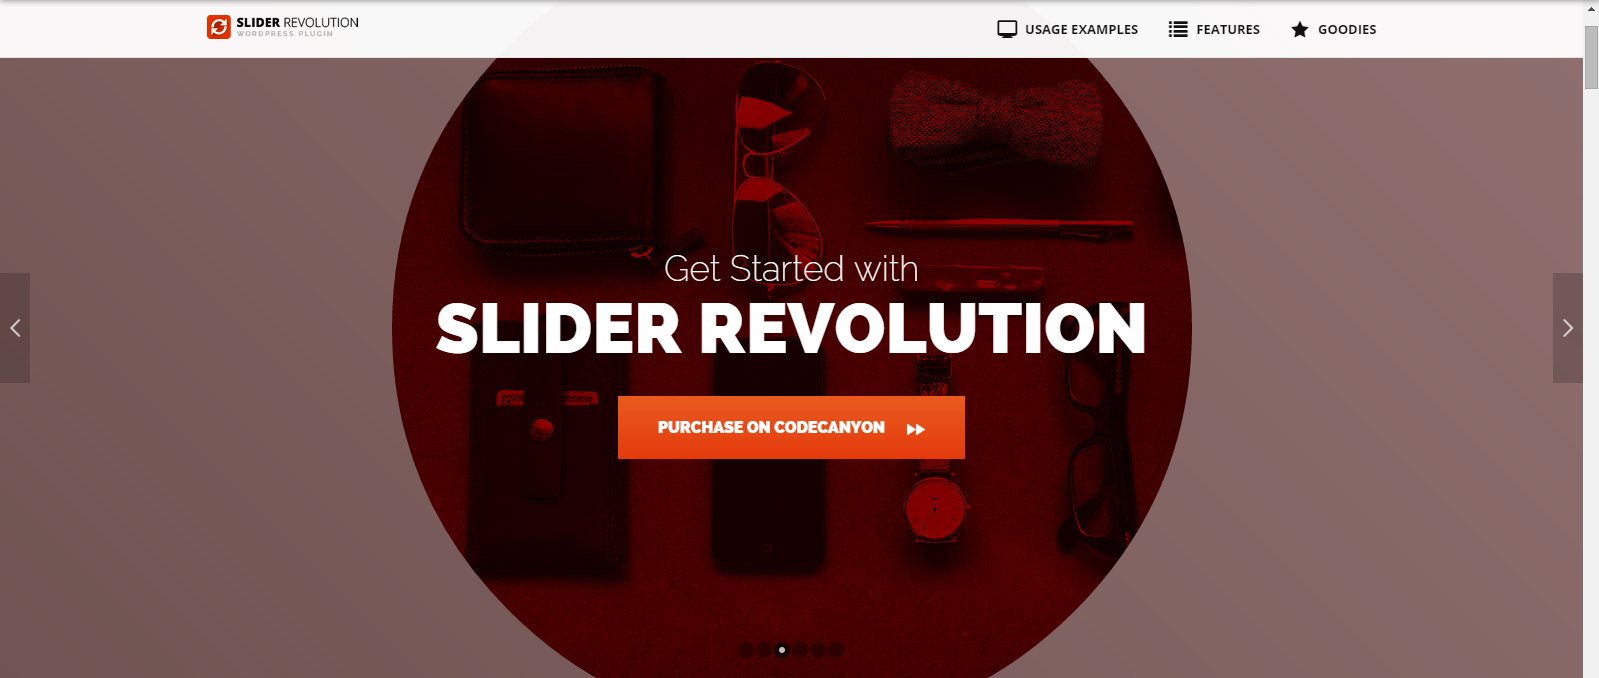 Slider Revolution and RevSlider Exploit WordPress | Security ...